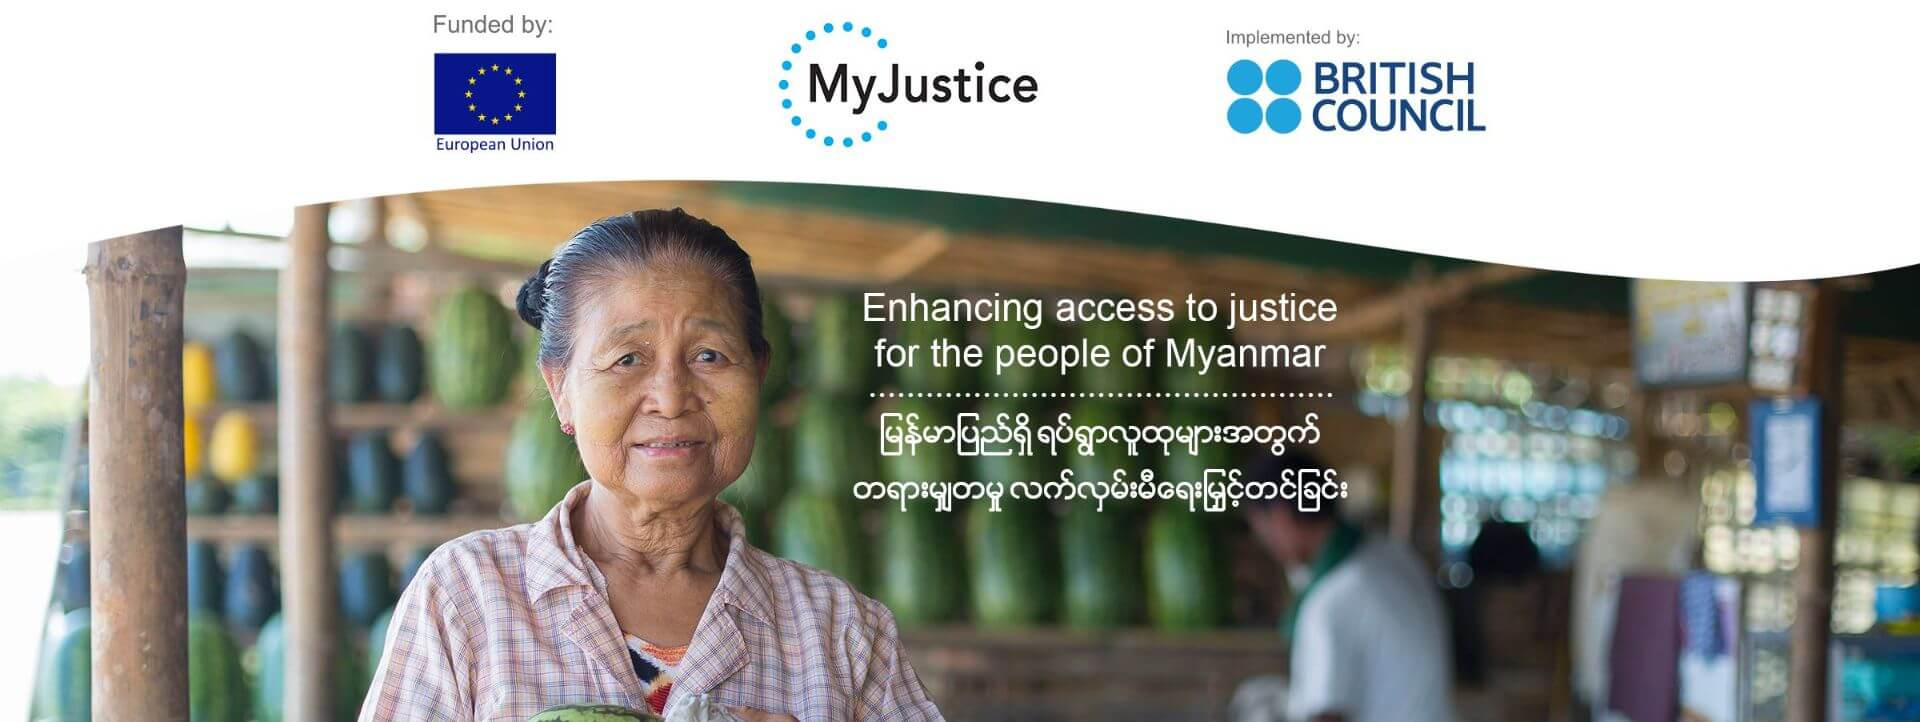 MYJUSTICE: ACCESS TO JUSTICE Image